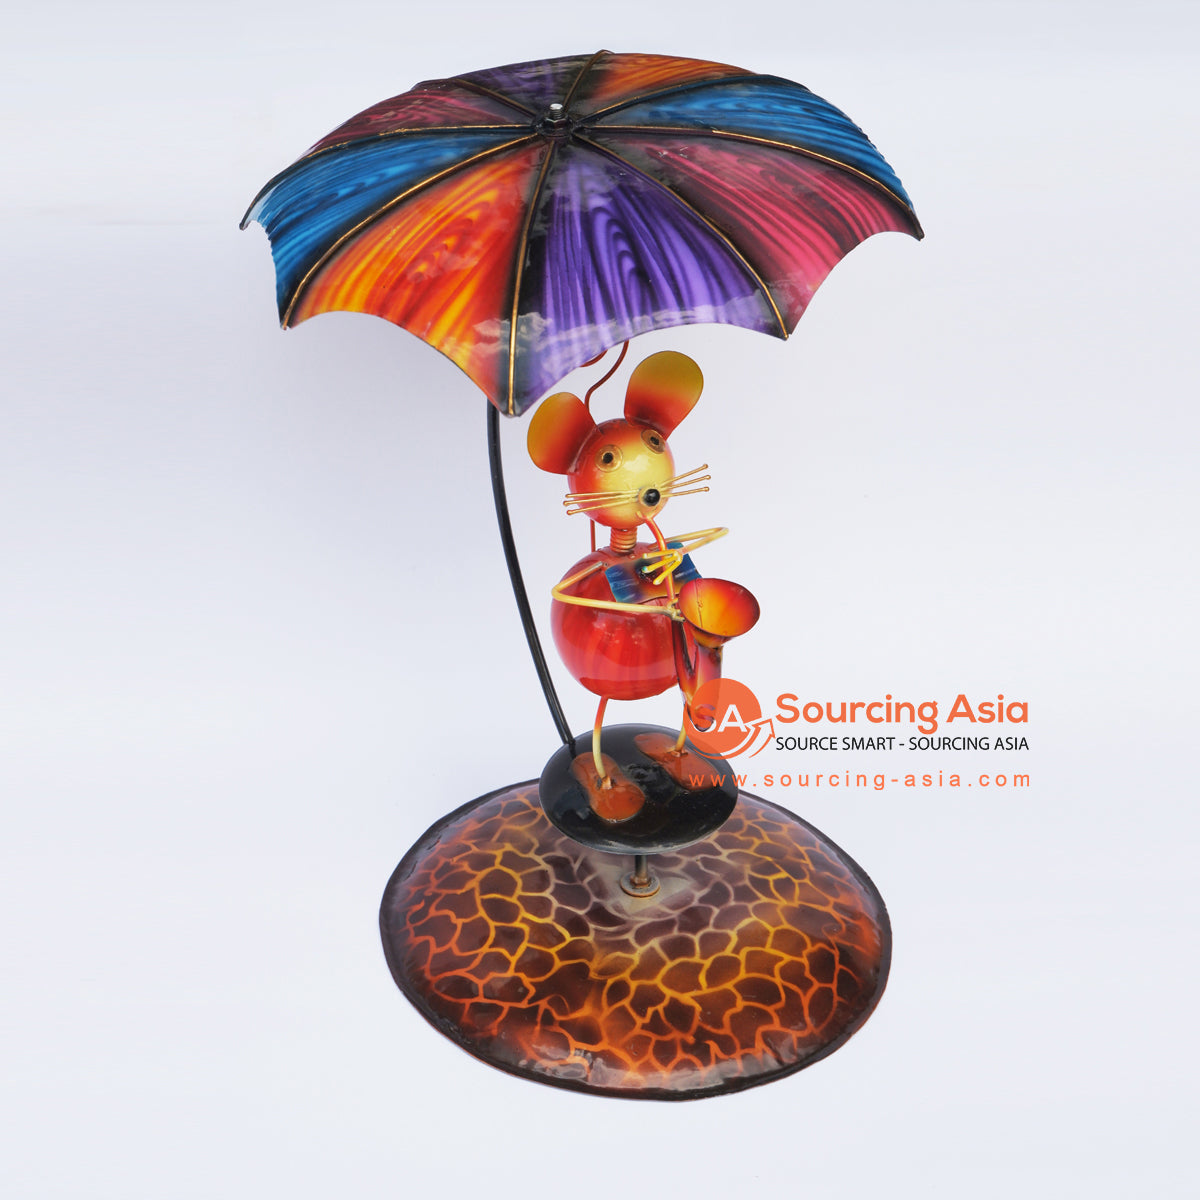 PEBC154 AIRBRUSHED PAINTED METAL DECOR MOUSE PLAYING TRUMPET UNDER THE UMBRELLA DECORATION